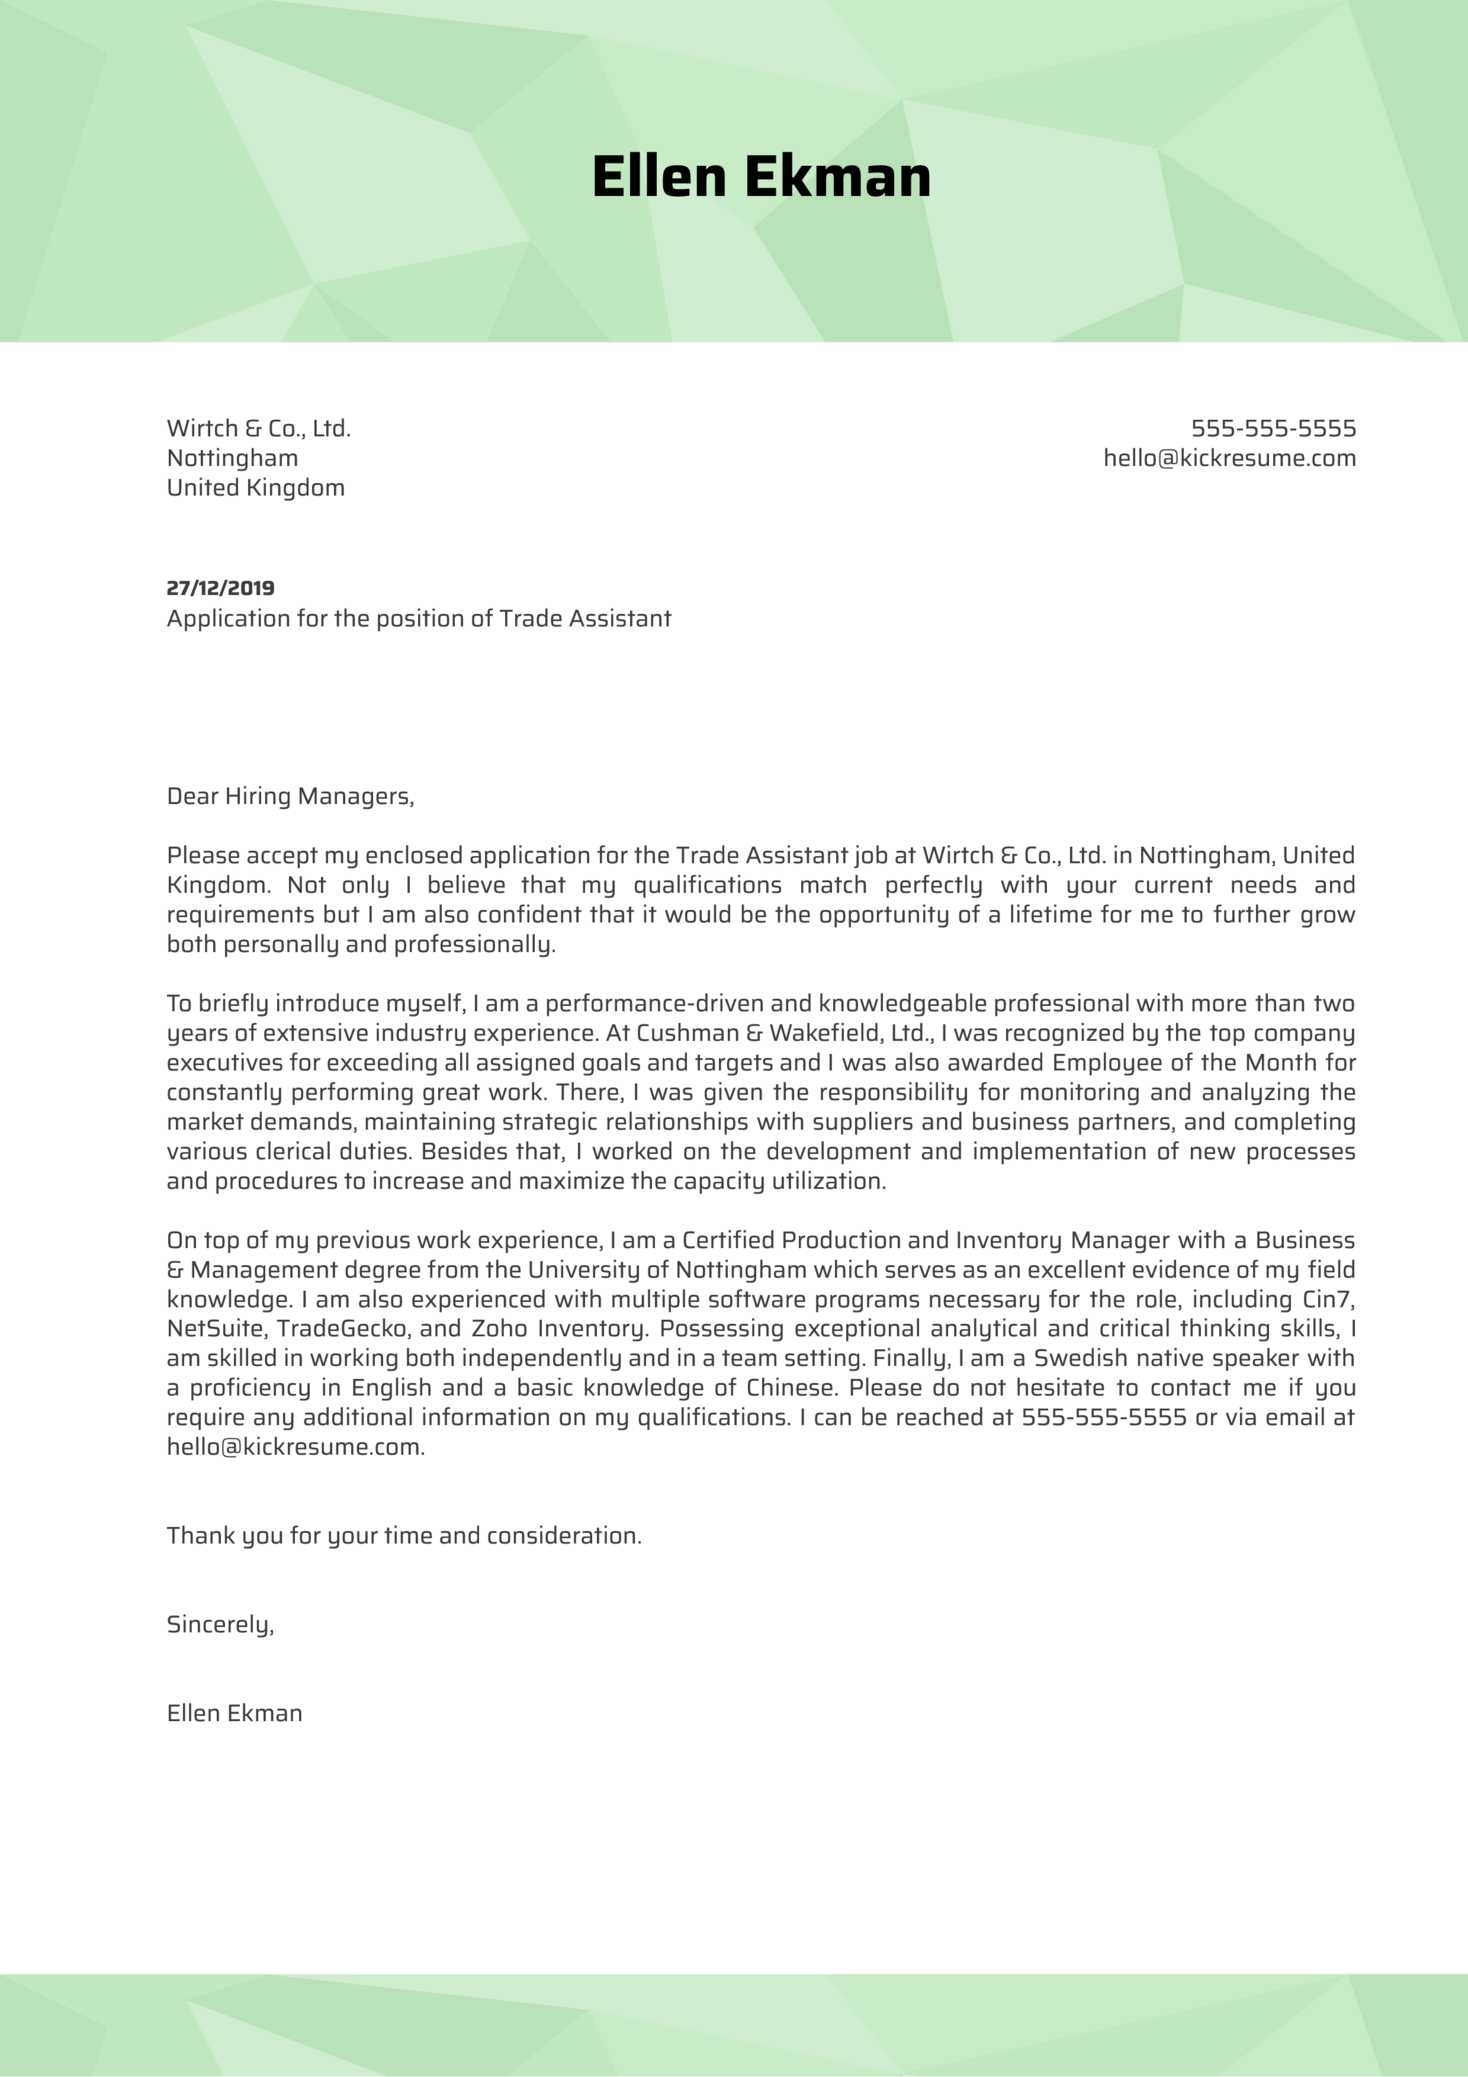 Trade Assistant Cover Letter Example